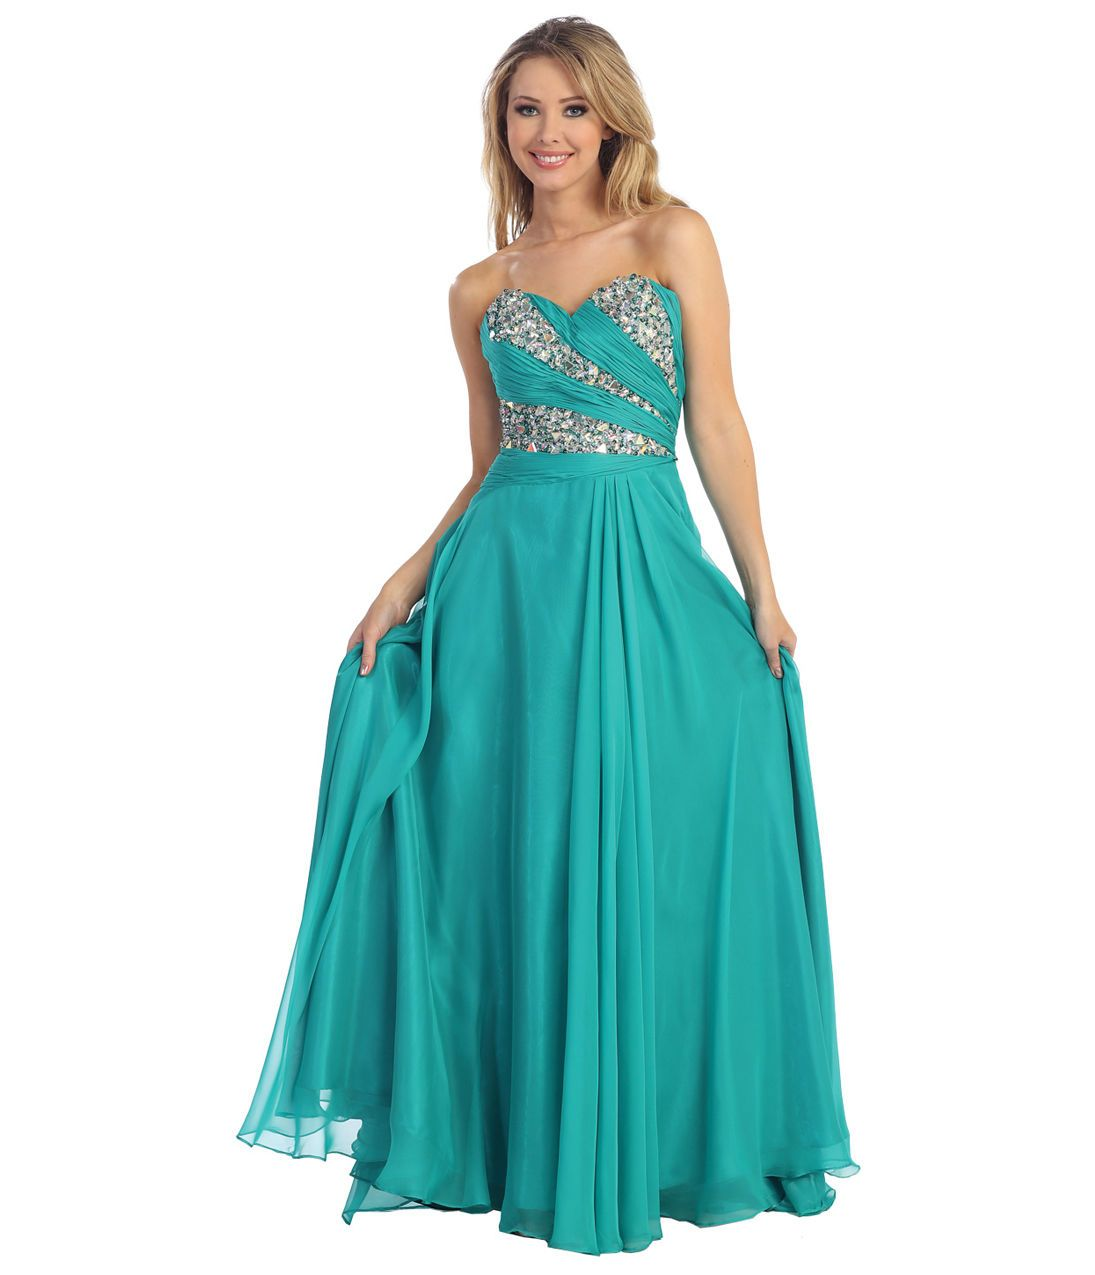 Poofy prom dresses under dollars beautiful dresses pinterest